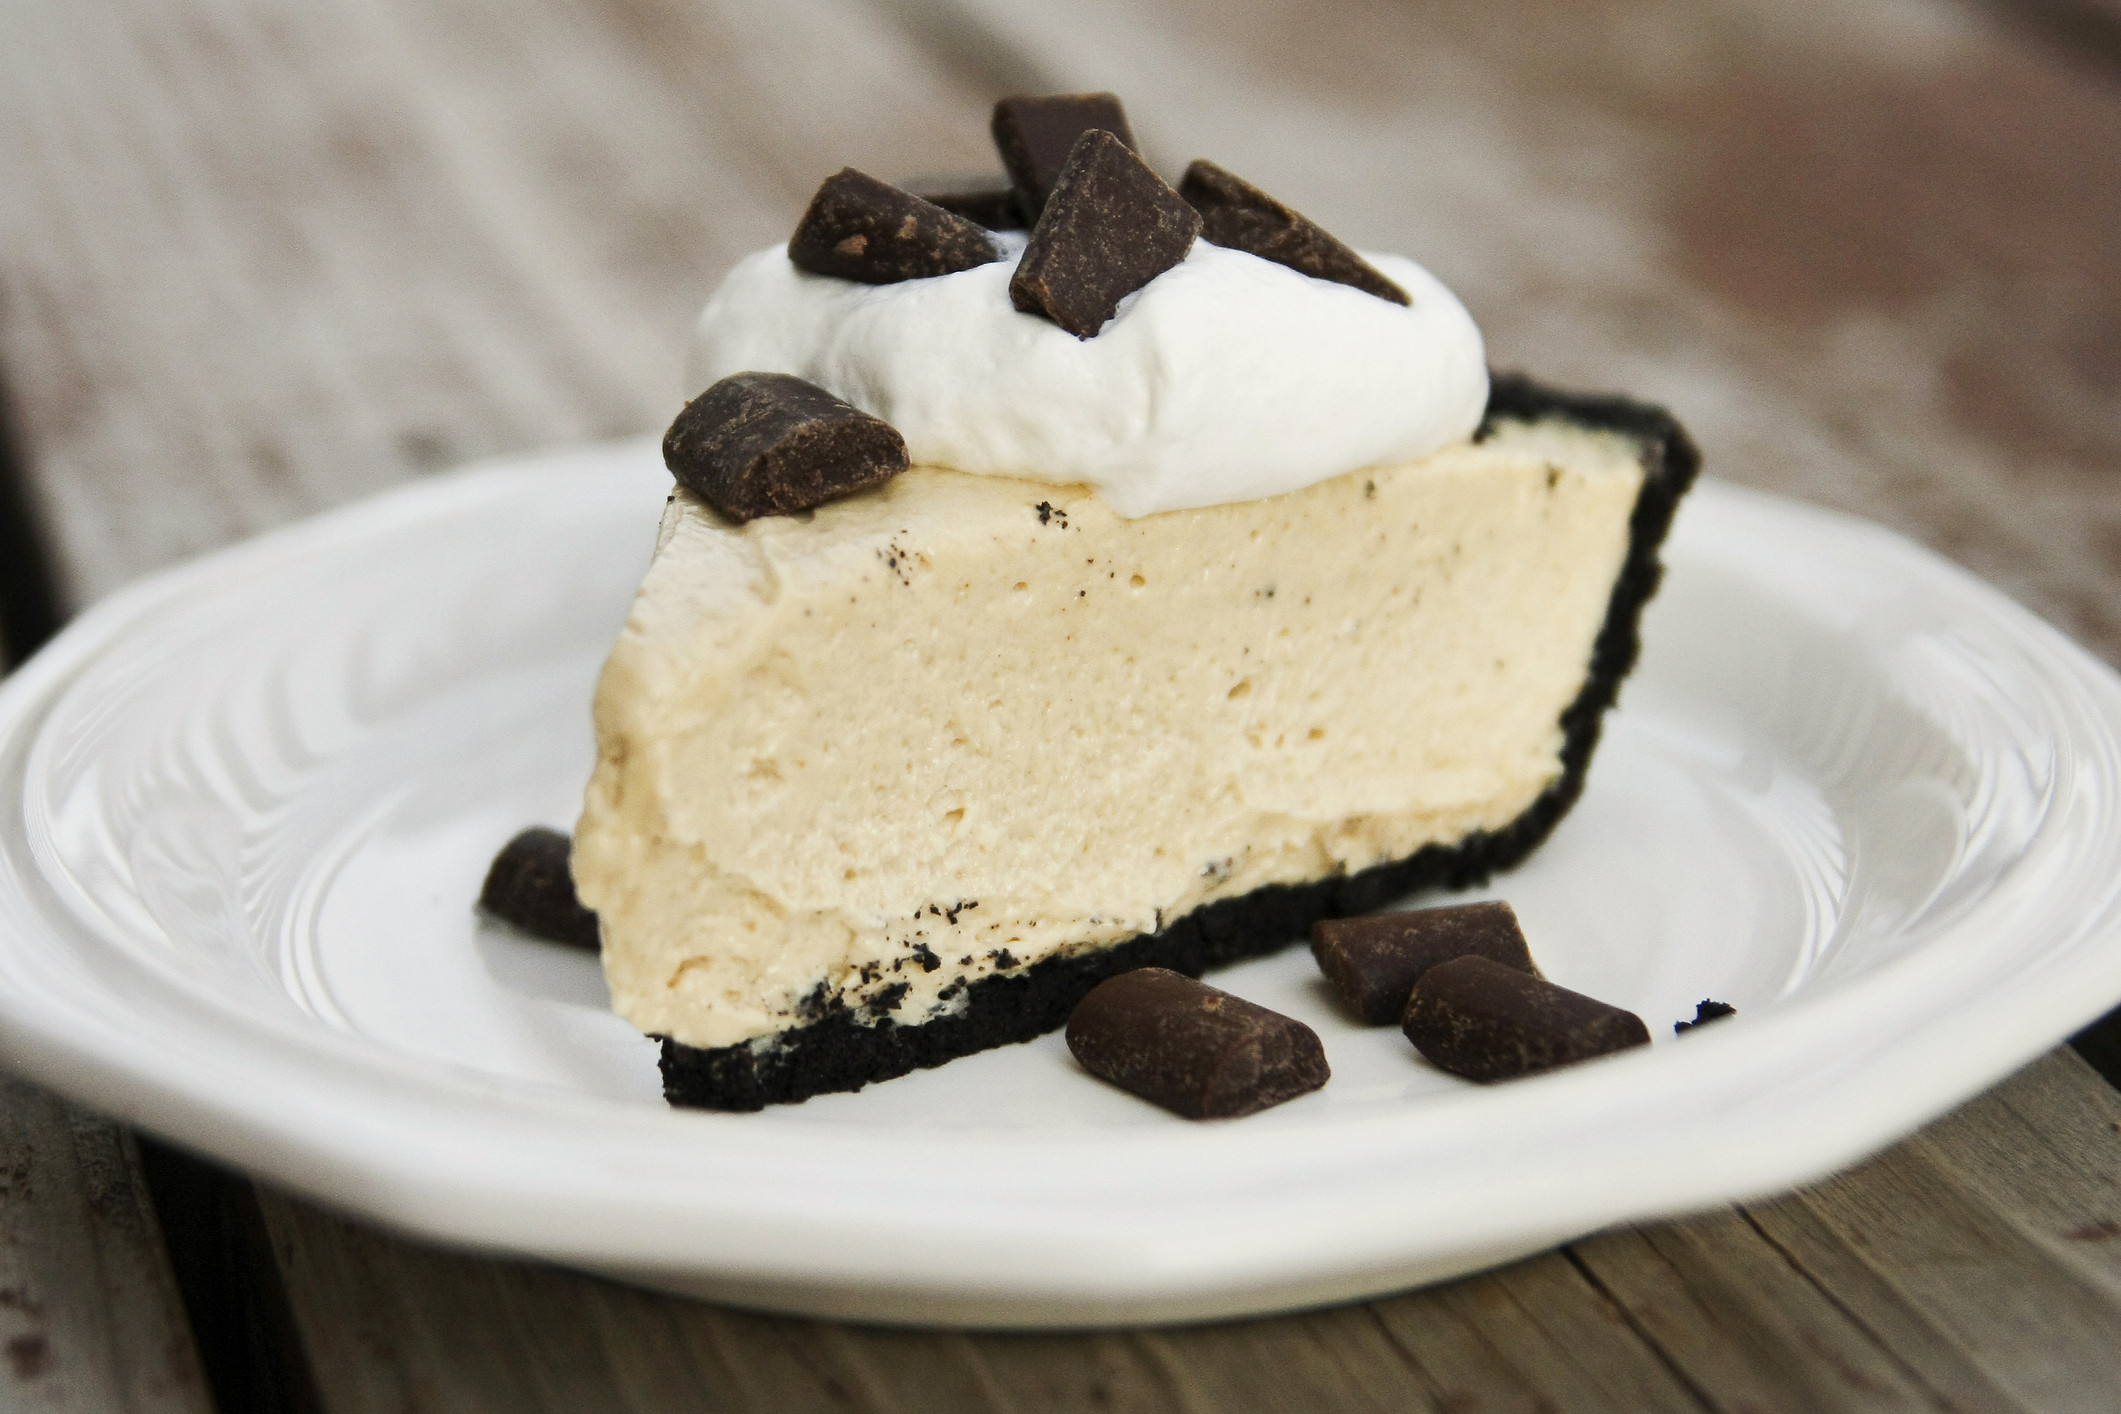 Peanut Butter Pie With Oreo Crust  Easy No Bake Peanut Butter Pie with Oreo Crust An Alli Event